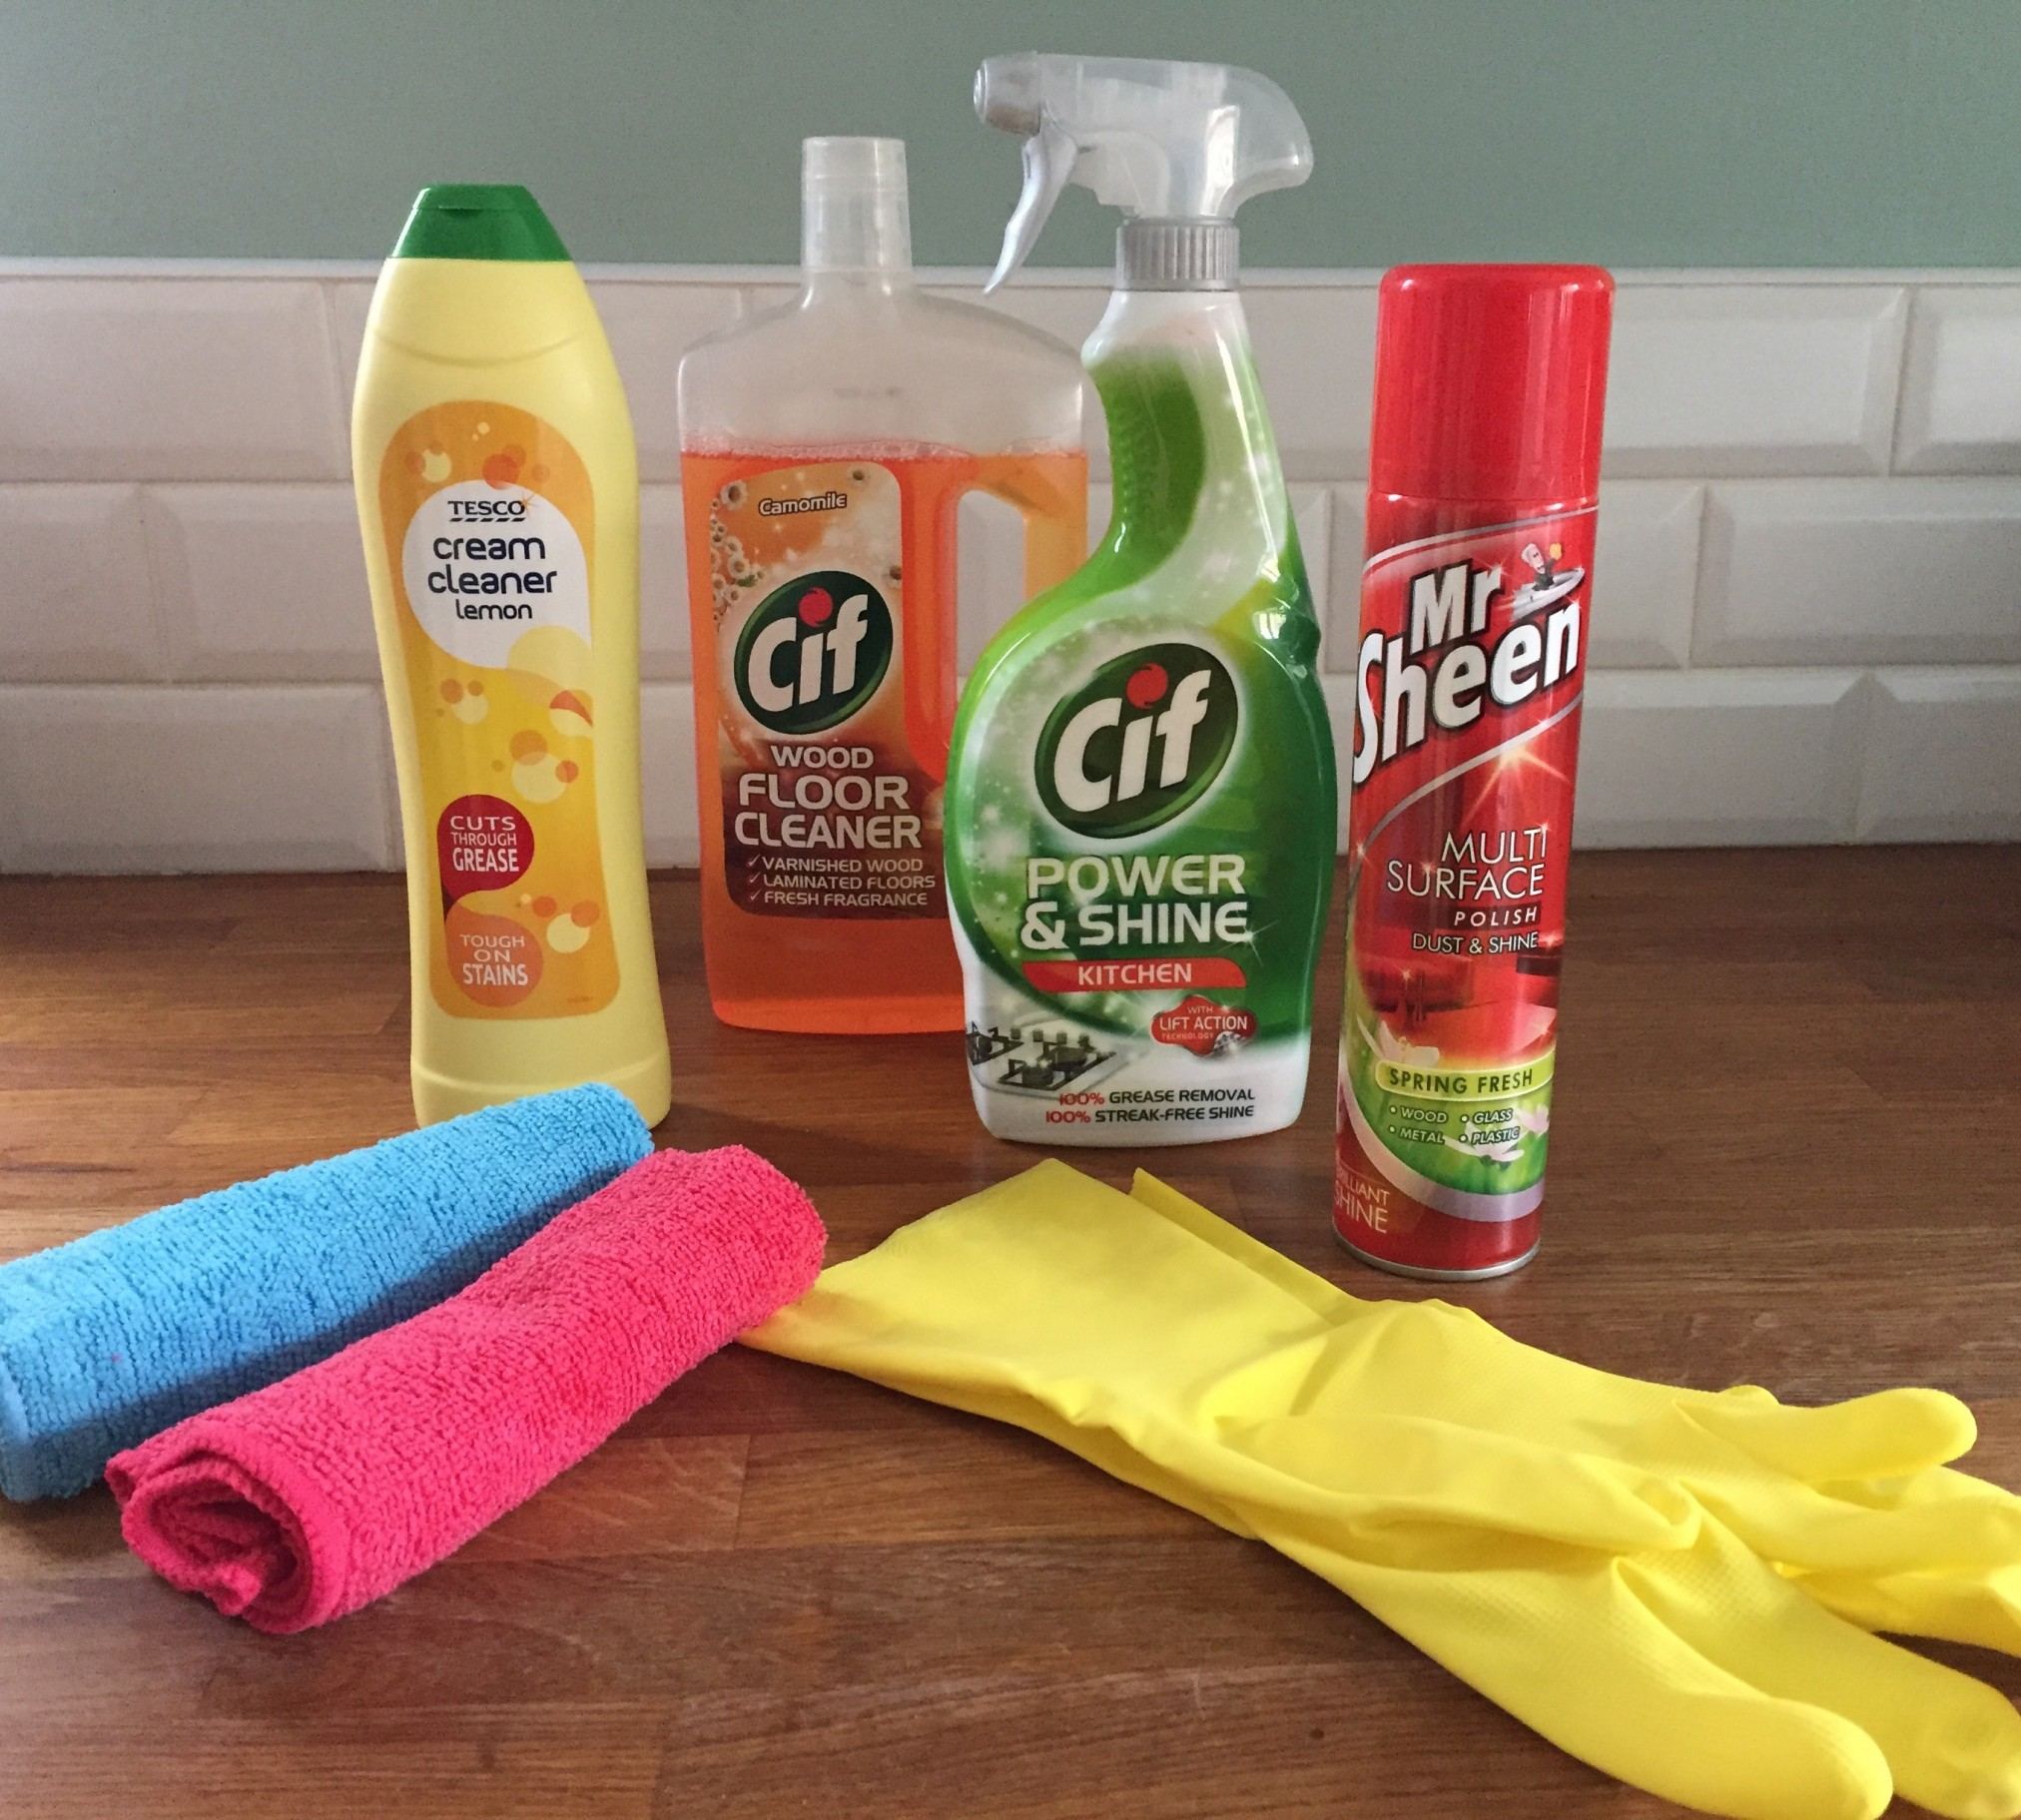 Cleaning products ready for cleaning with hassle.com